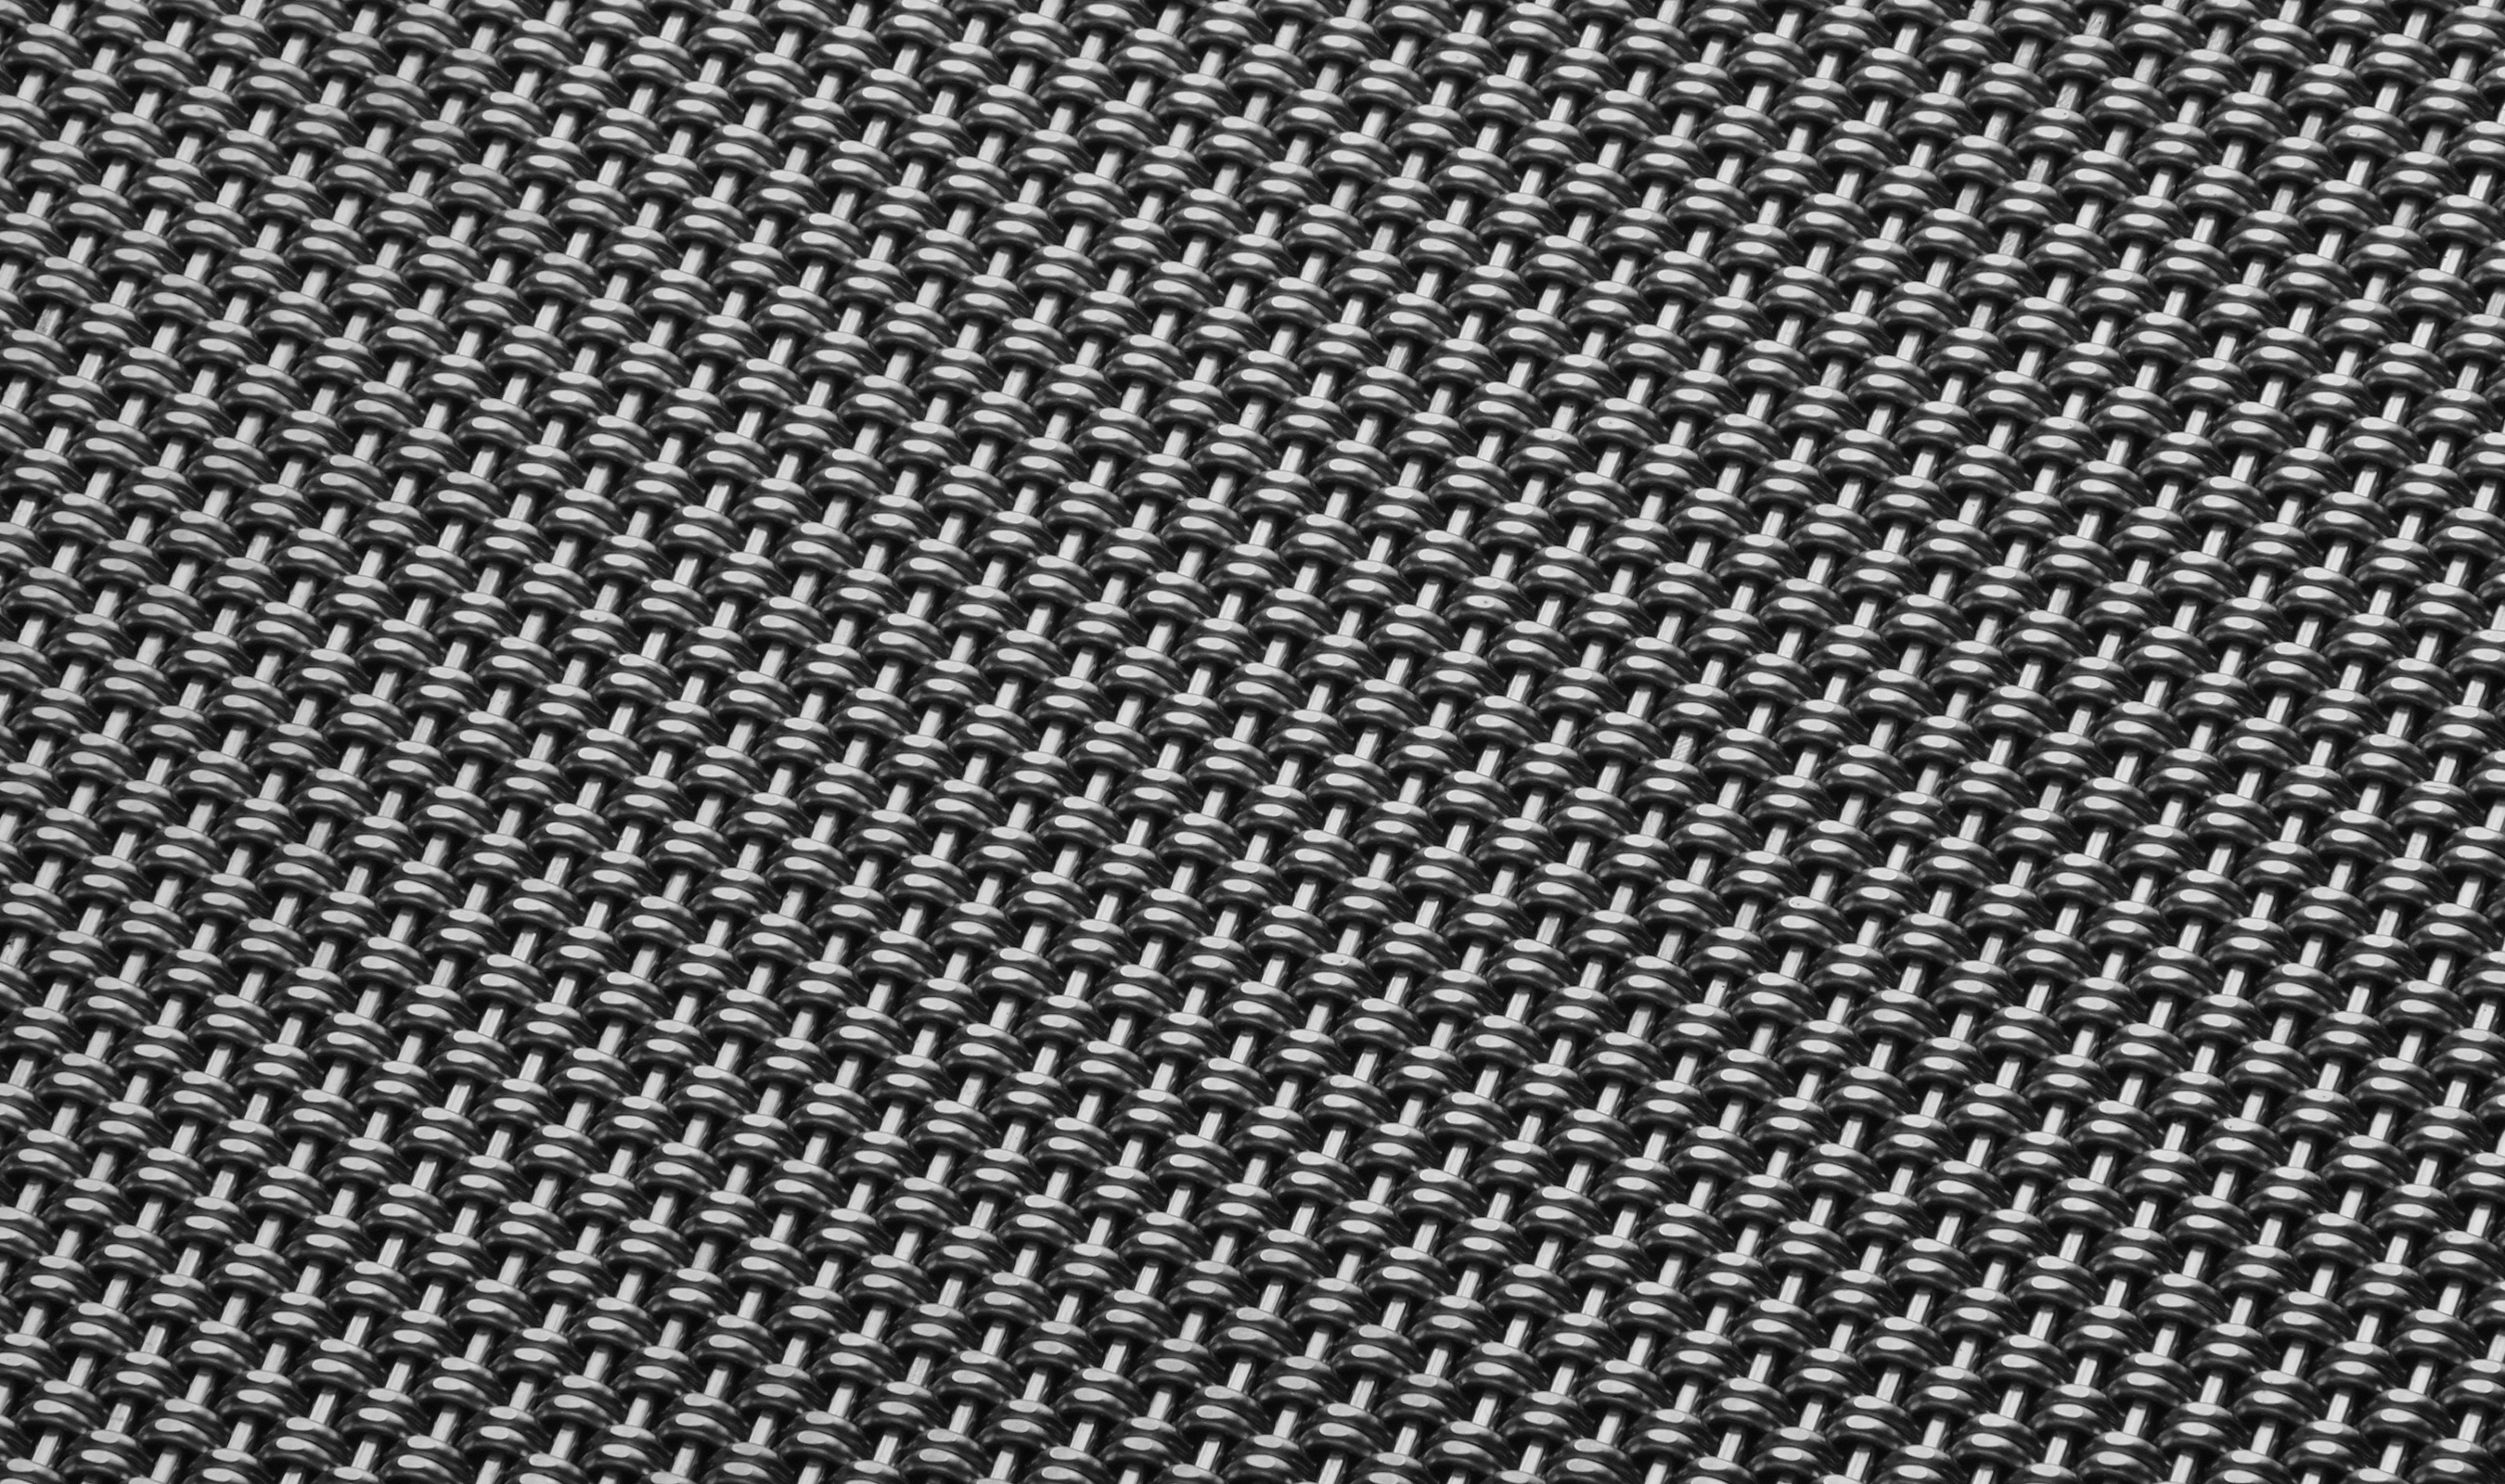 DS-51 Architectural wire mesh